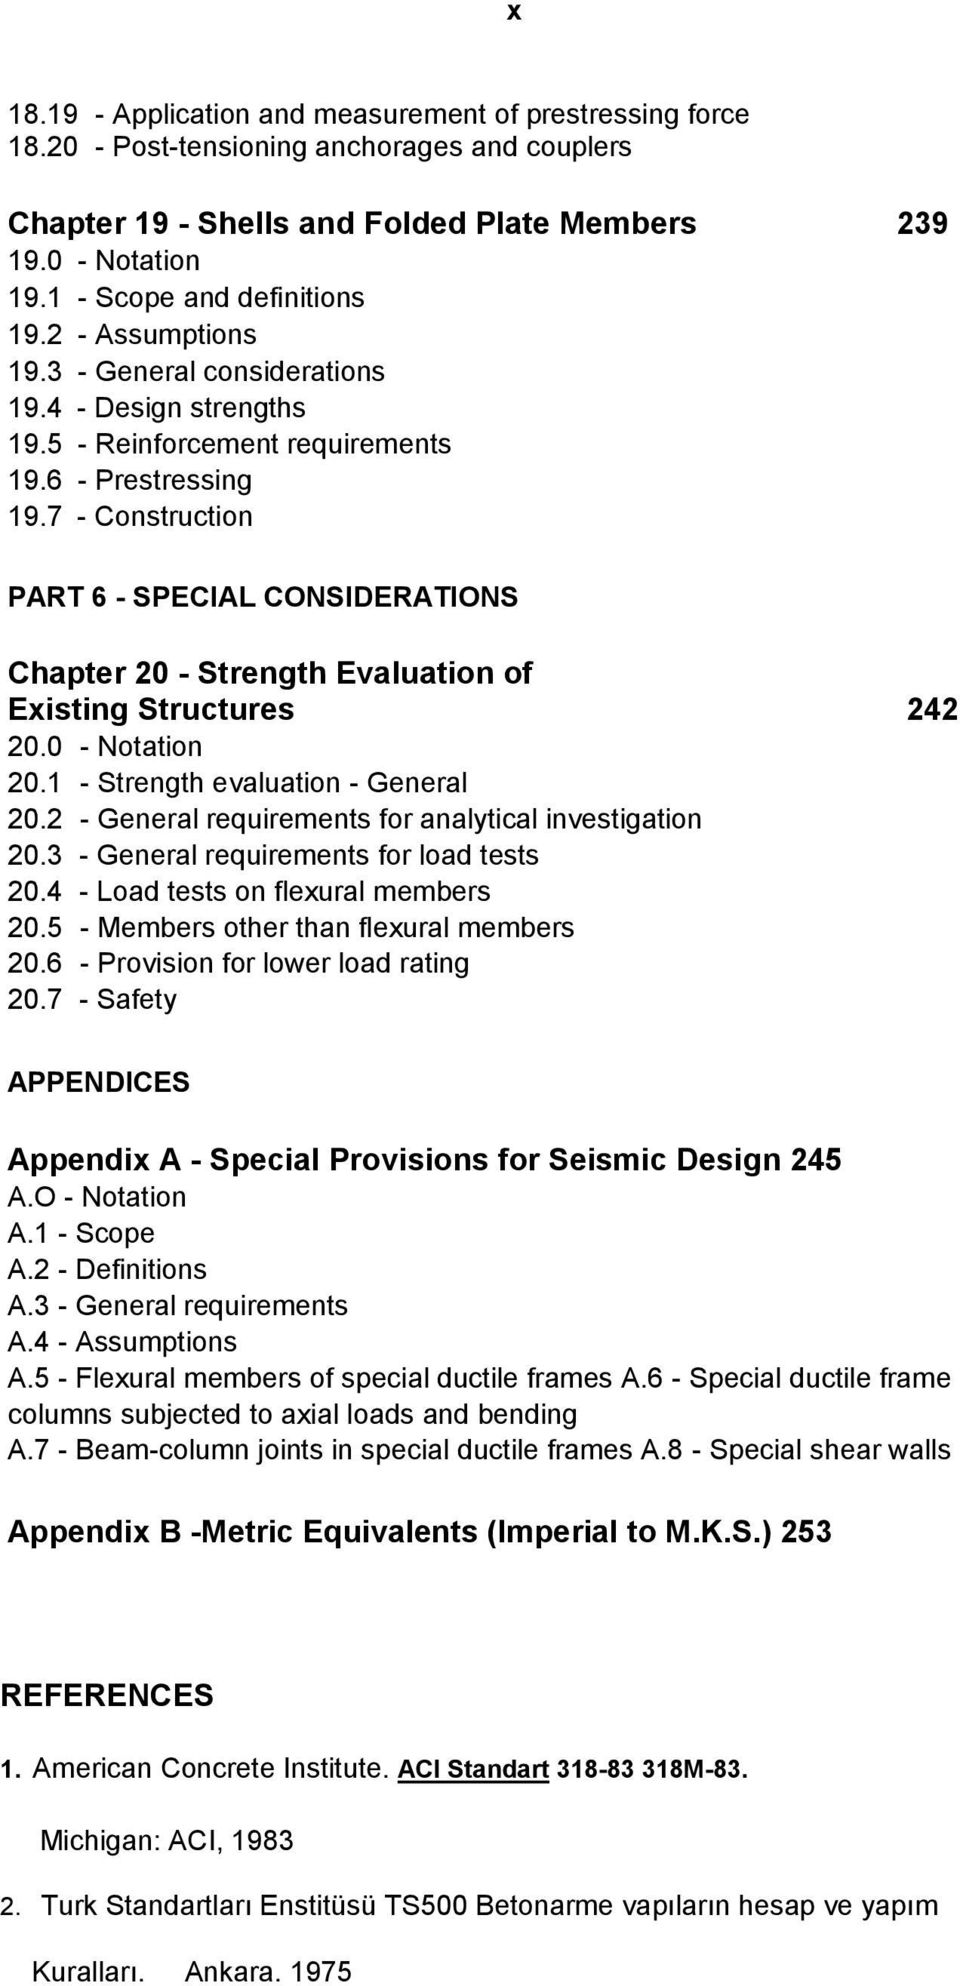 7 - Construction PART 6 - SPECIAL CONSIDERATIONS Chapter 20 - Strength Evaluation of Existing Structures 242 20.0 - Notation 20.1 - Strength evaluation - General 20.